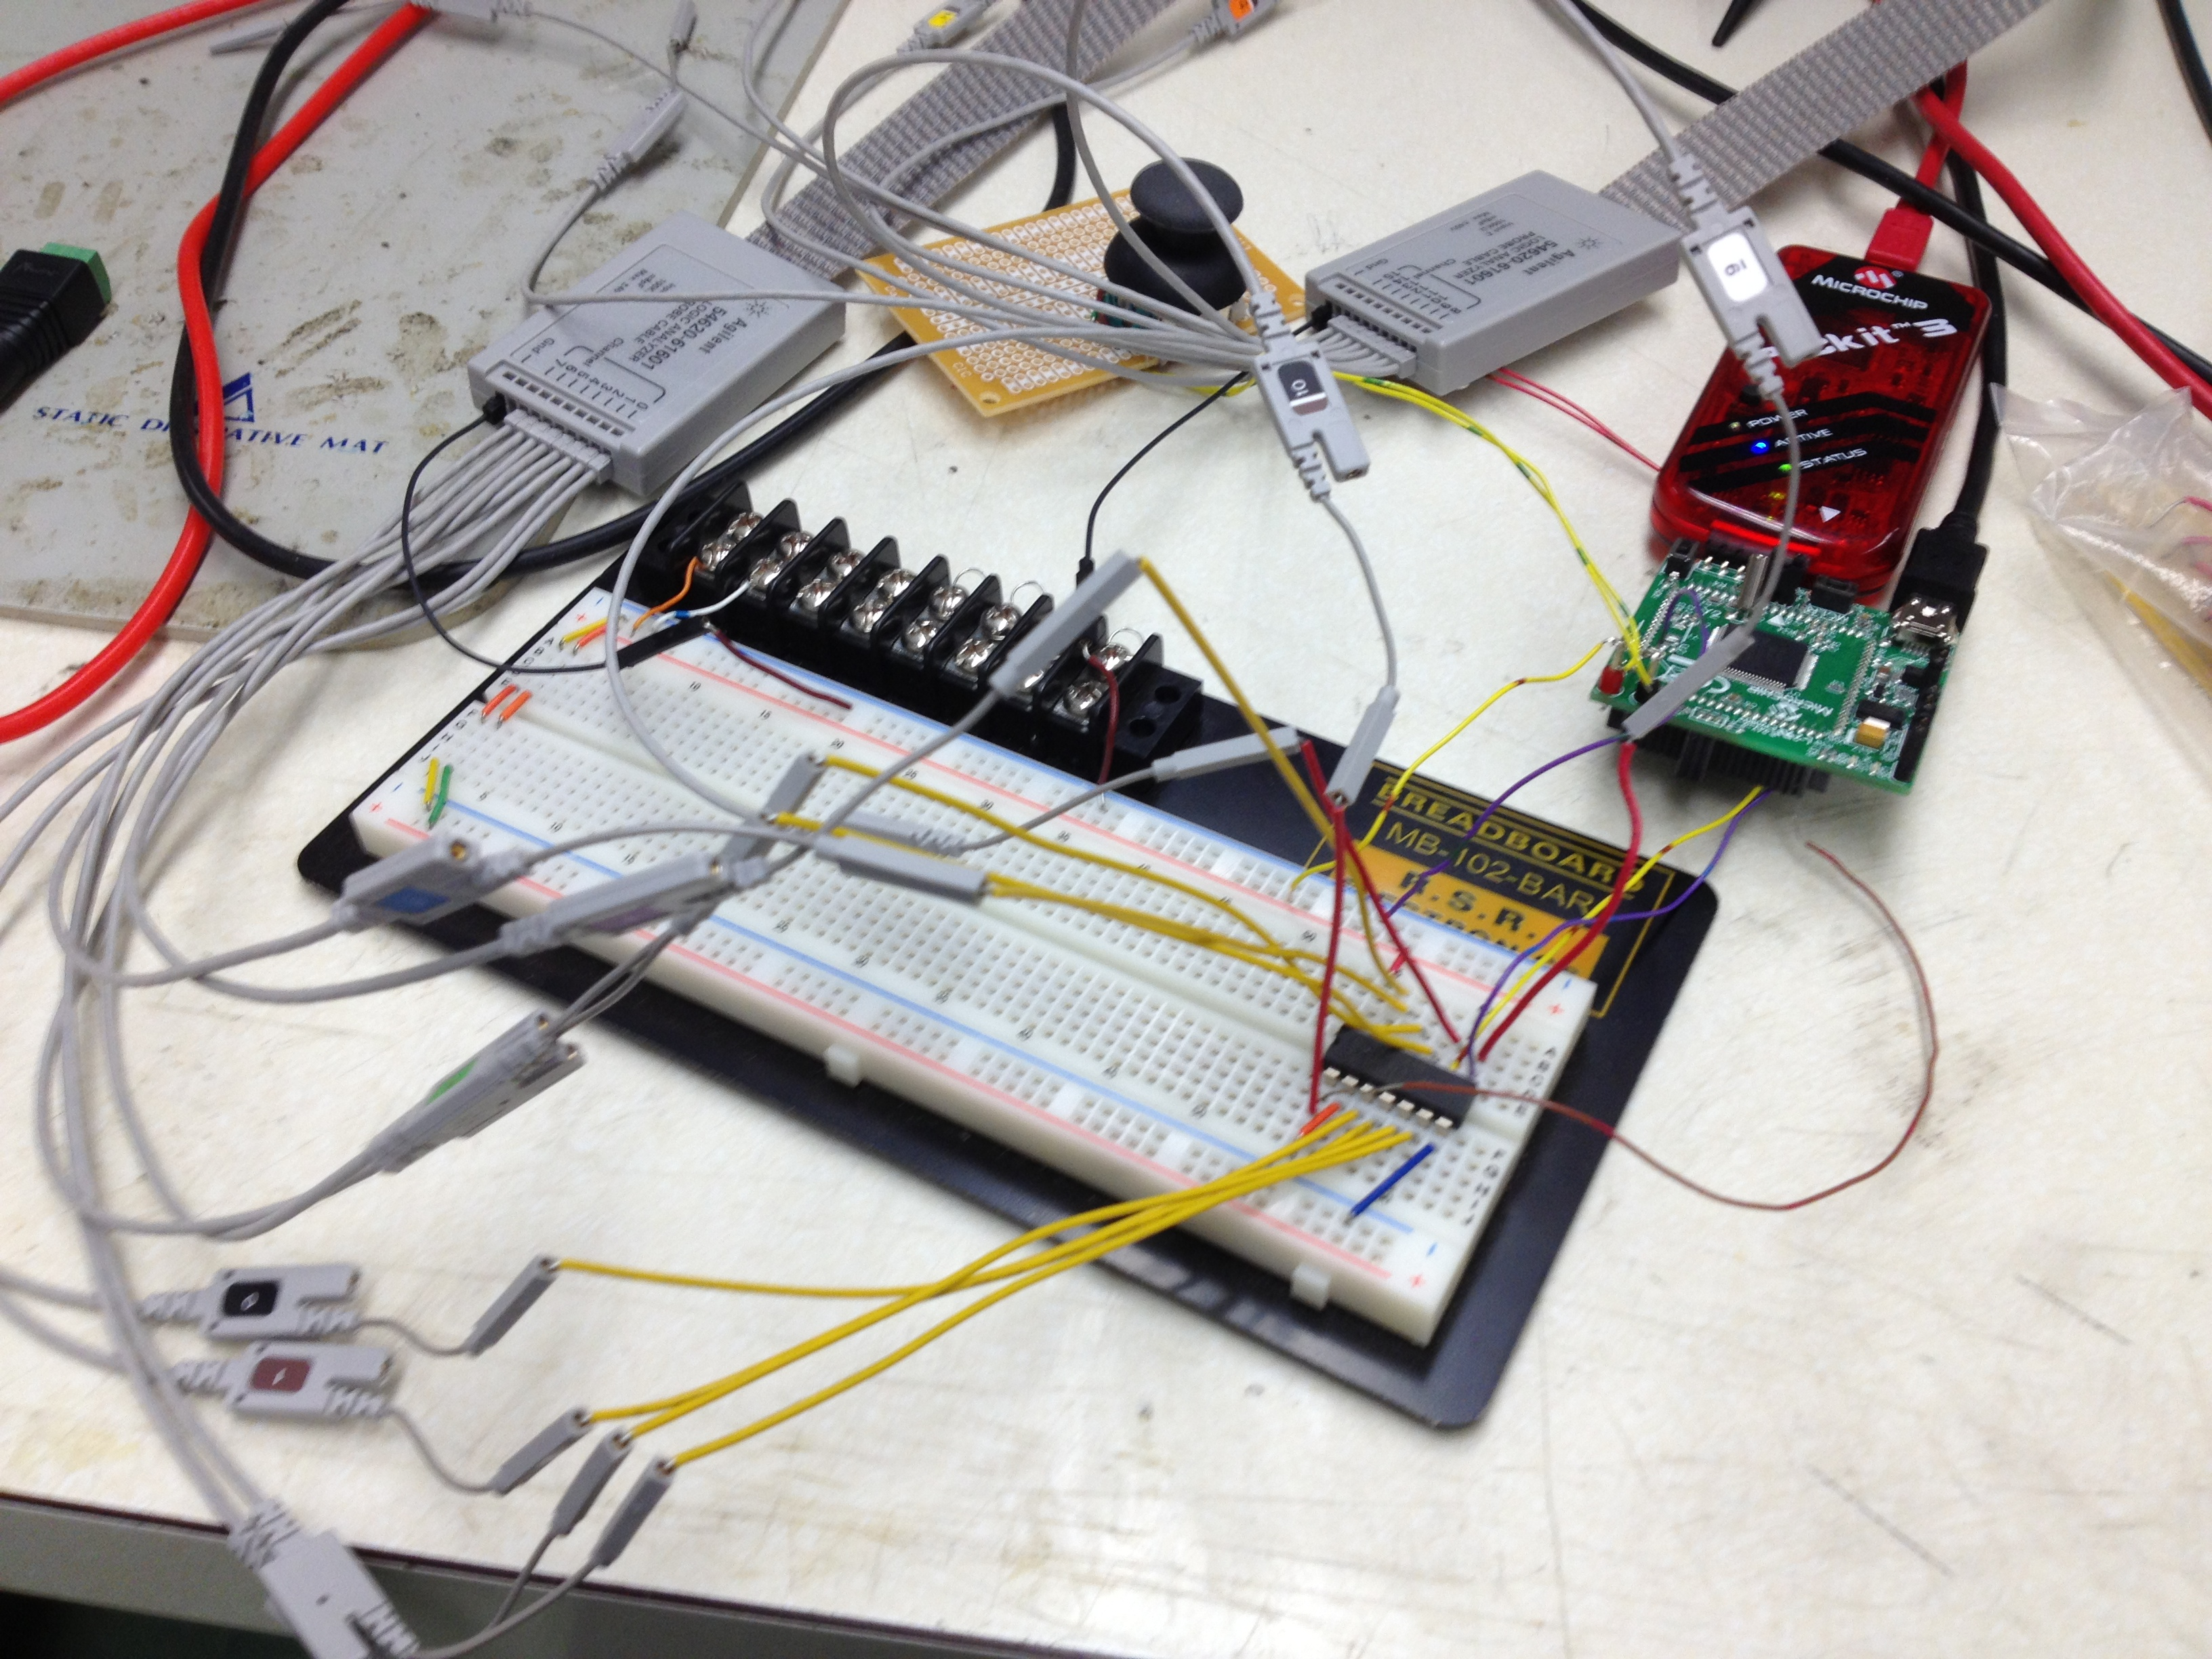 Jordan Wagners Lab Notebook Prototype Pcb Printed Circuit Board Breadboard Protoboard 1200 Points Shift Register And Oscilloscope Setup